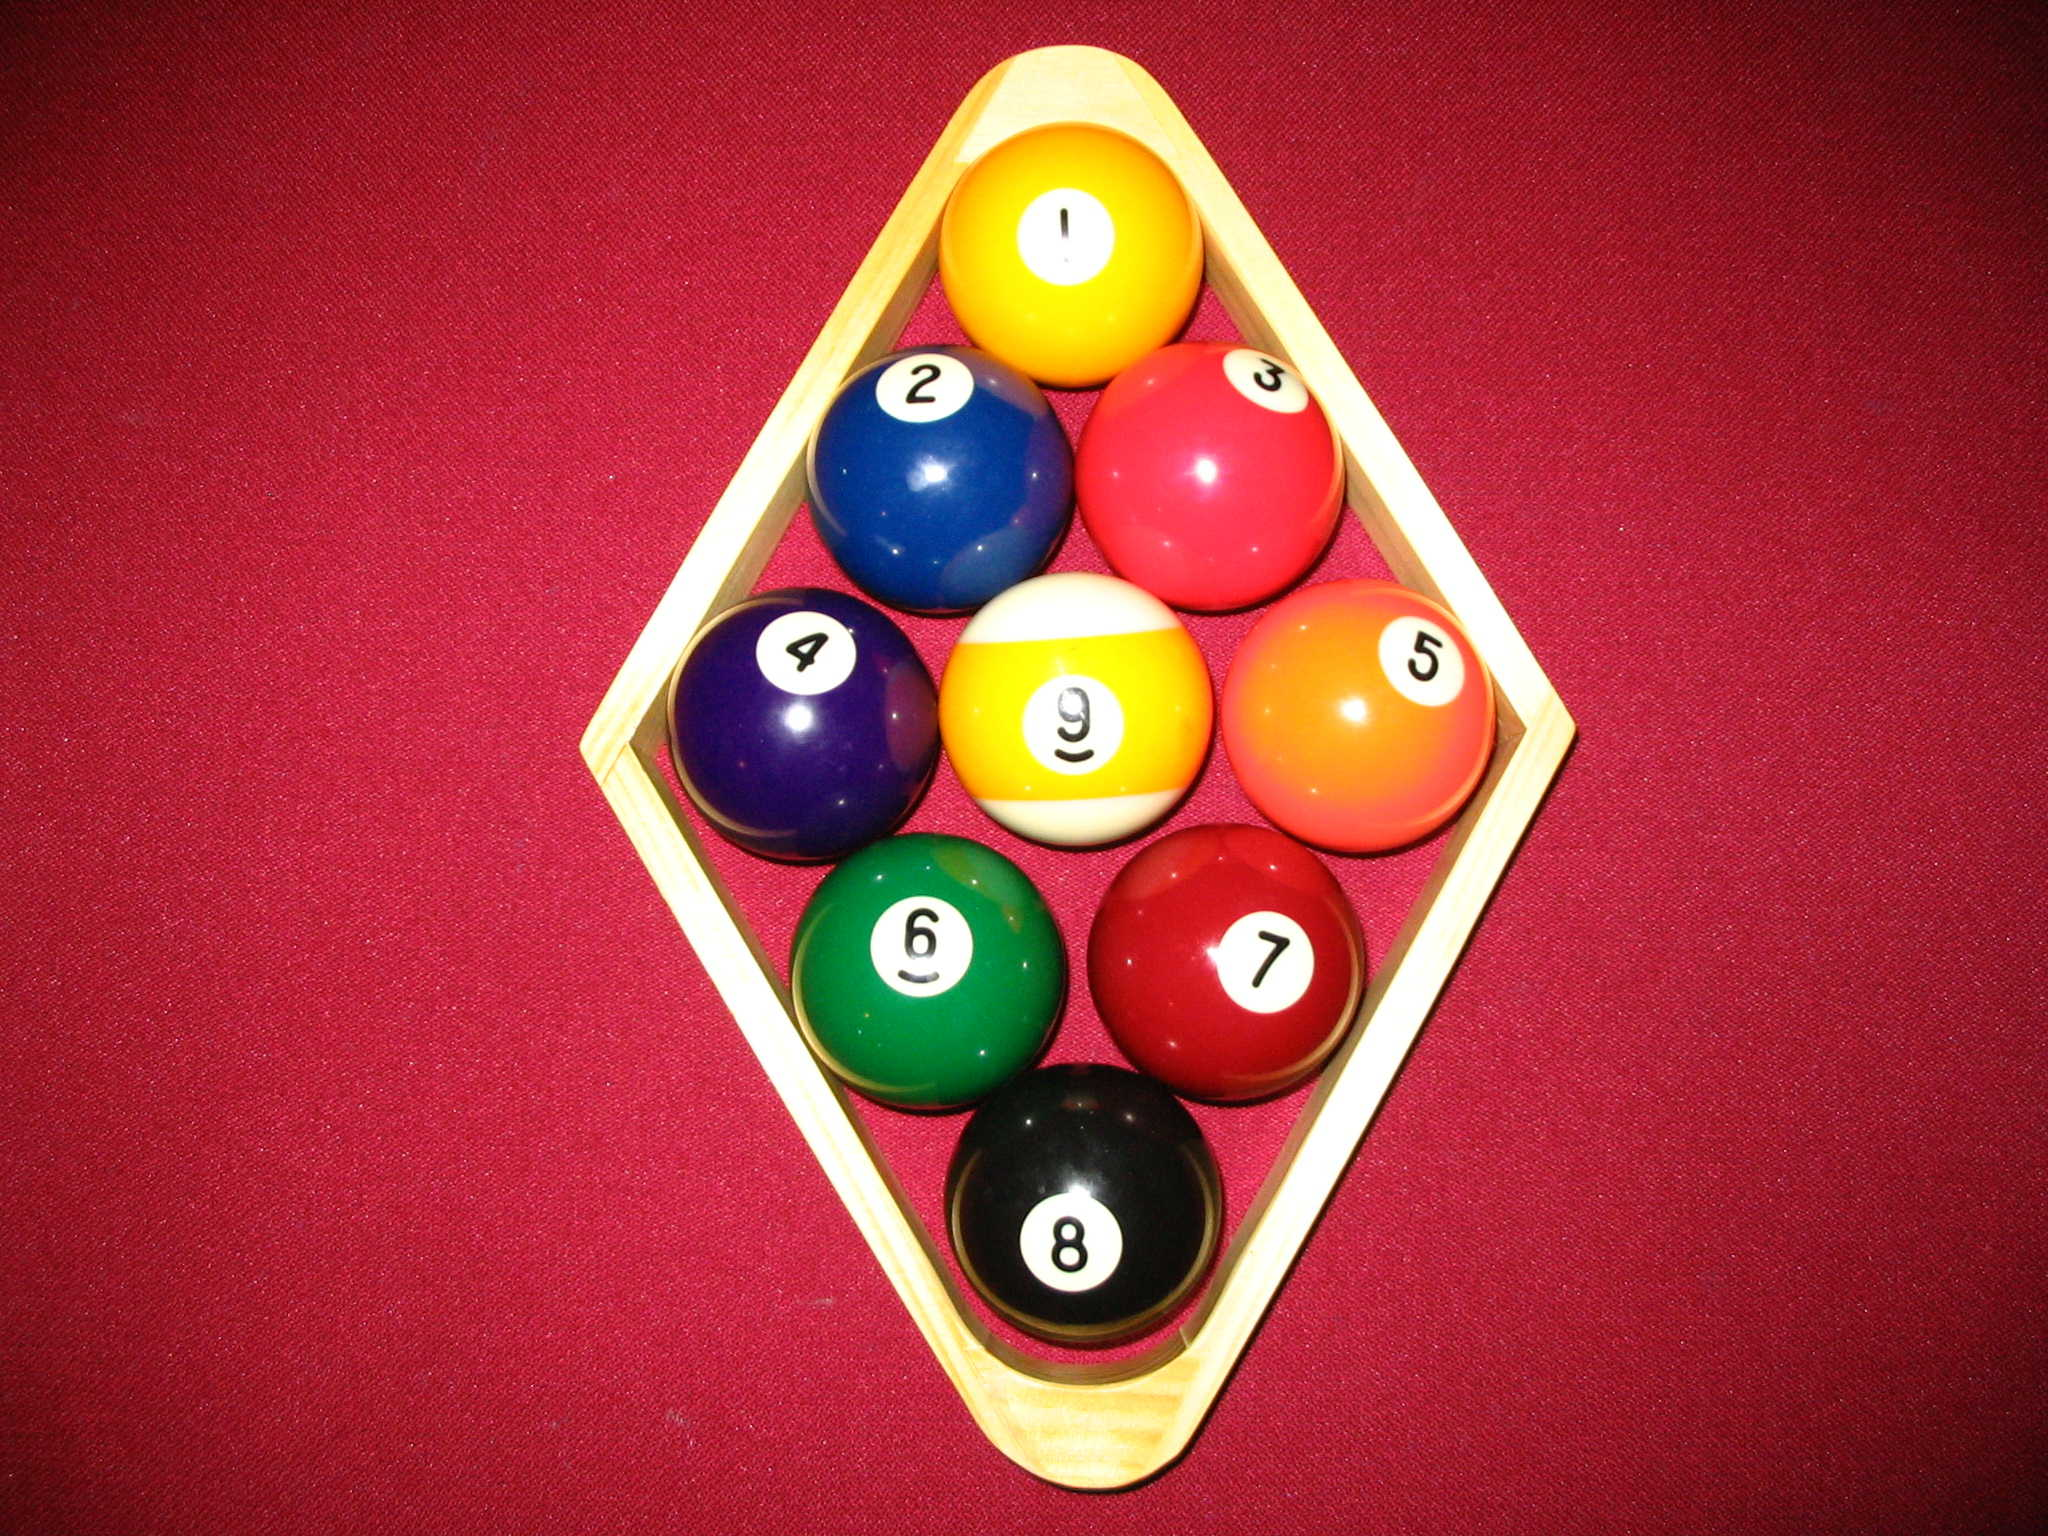 9 Ball Pool Rules Simple